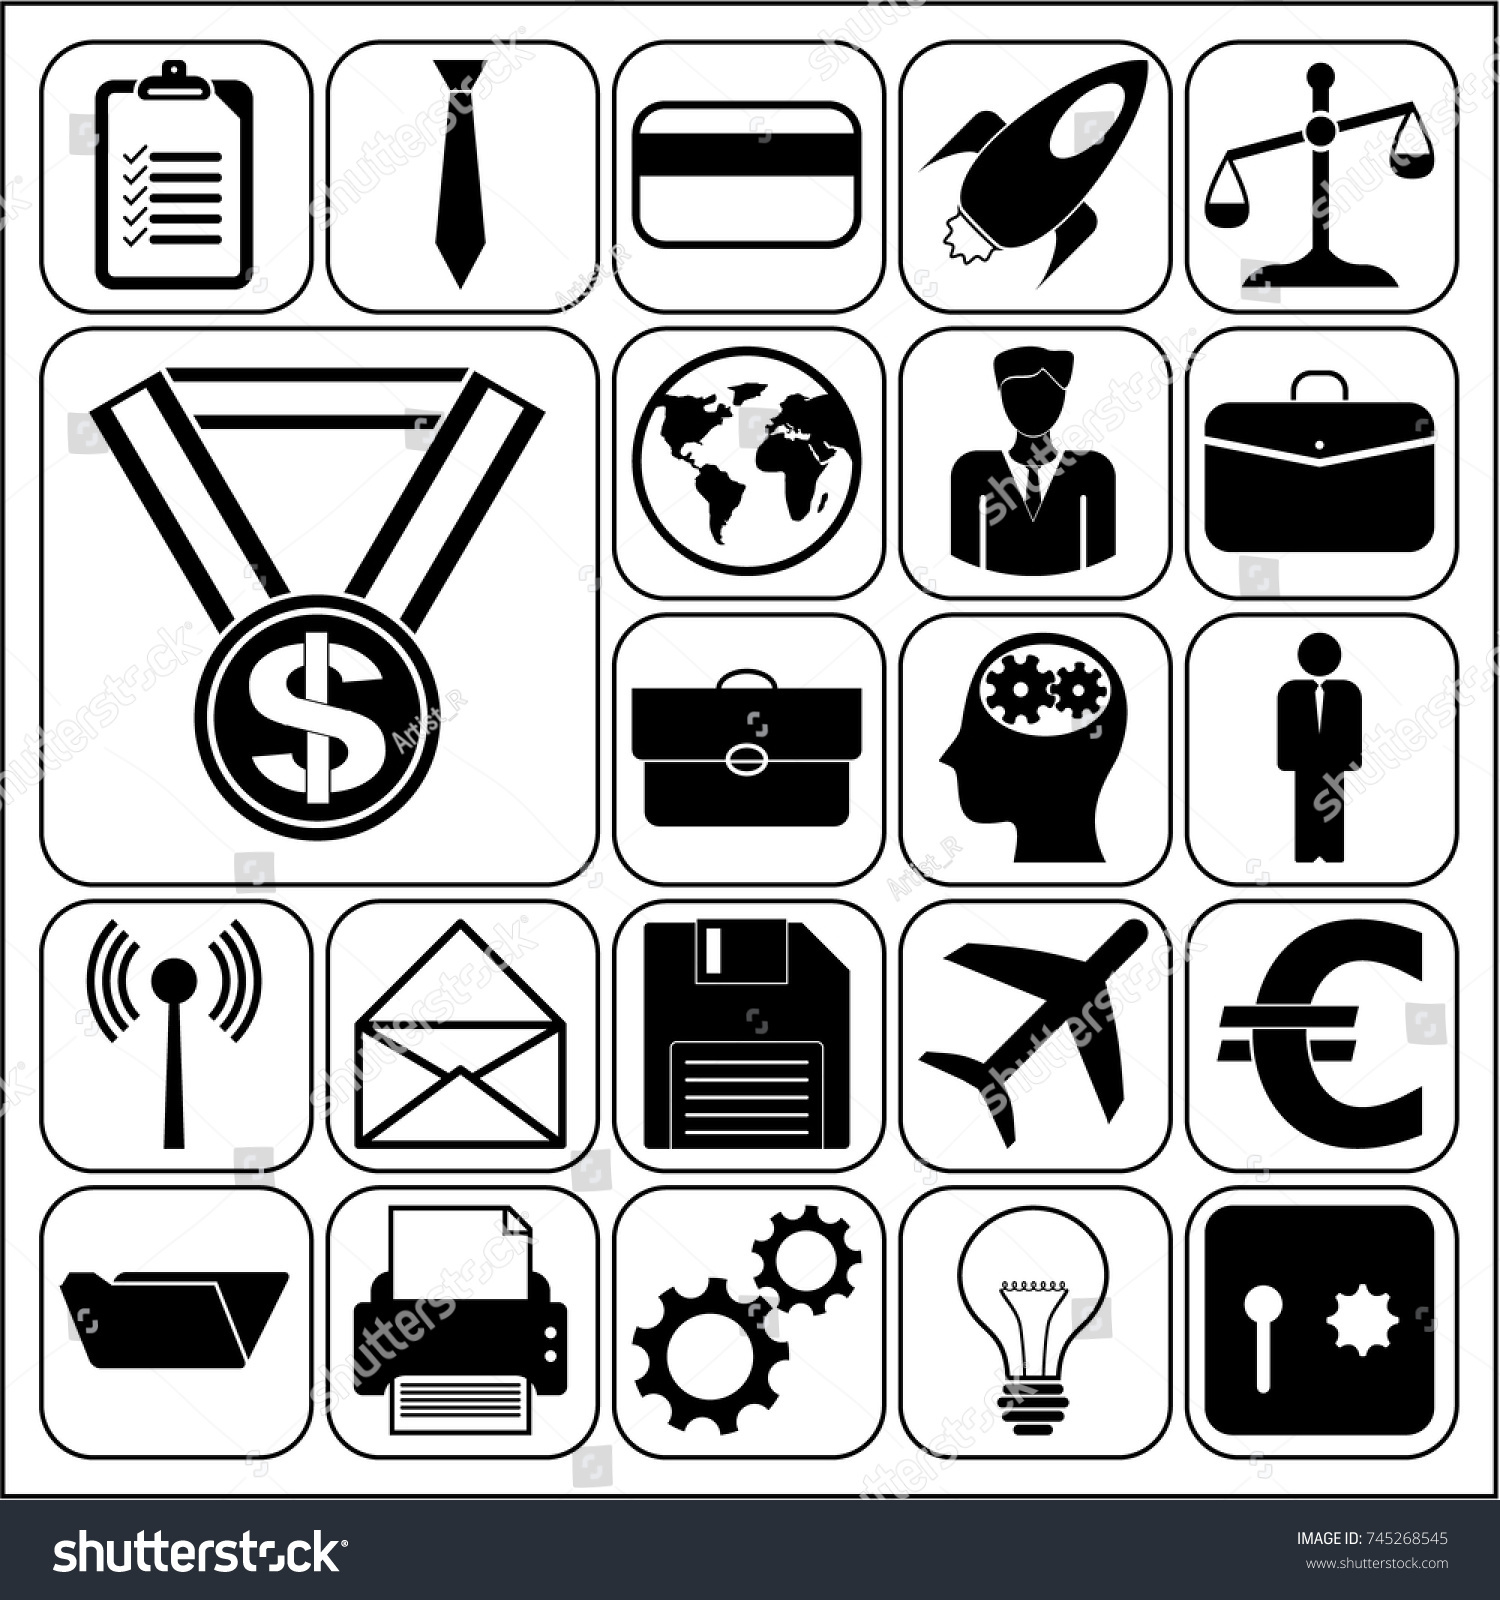 Set 22 Business Symbols Icons Collection Stock Vector 745268545